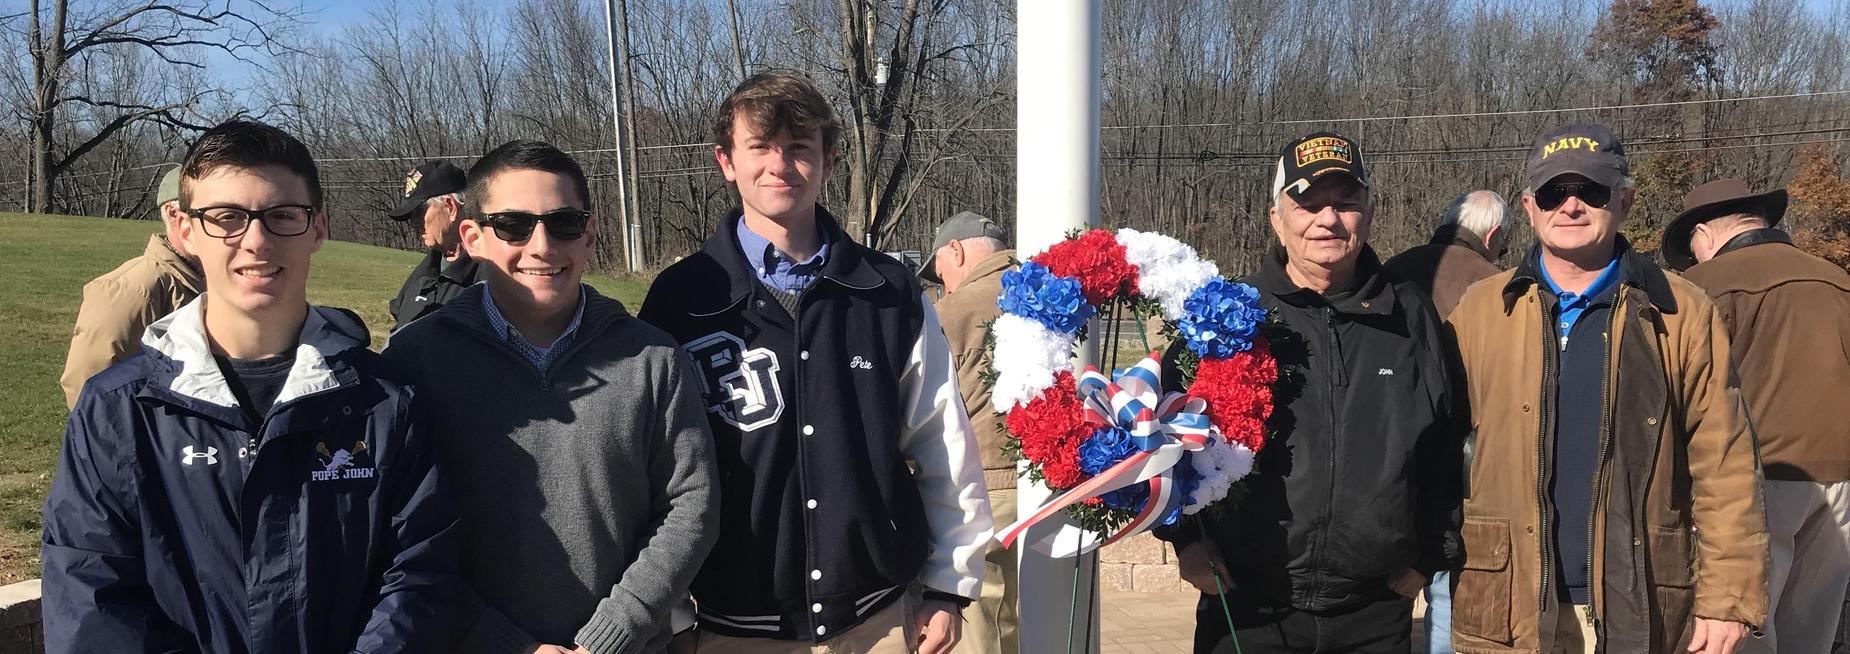 Pope John students pose in front of flagpole at Veterans Cemetery